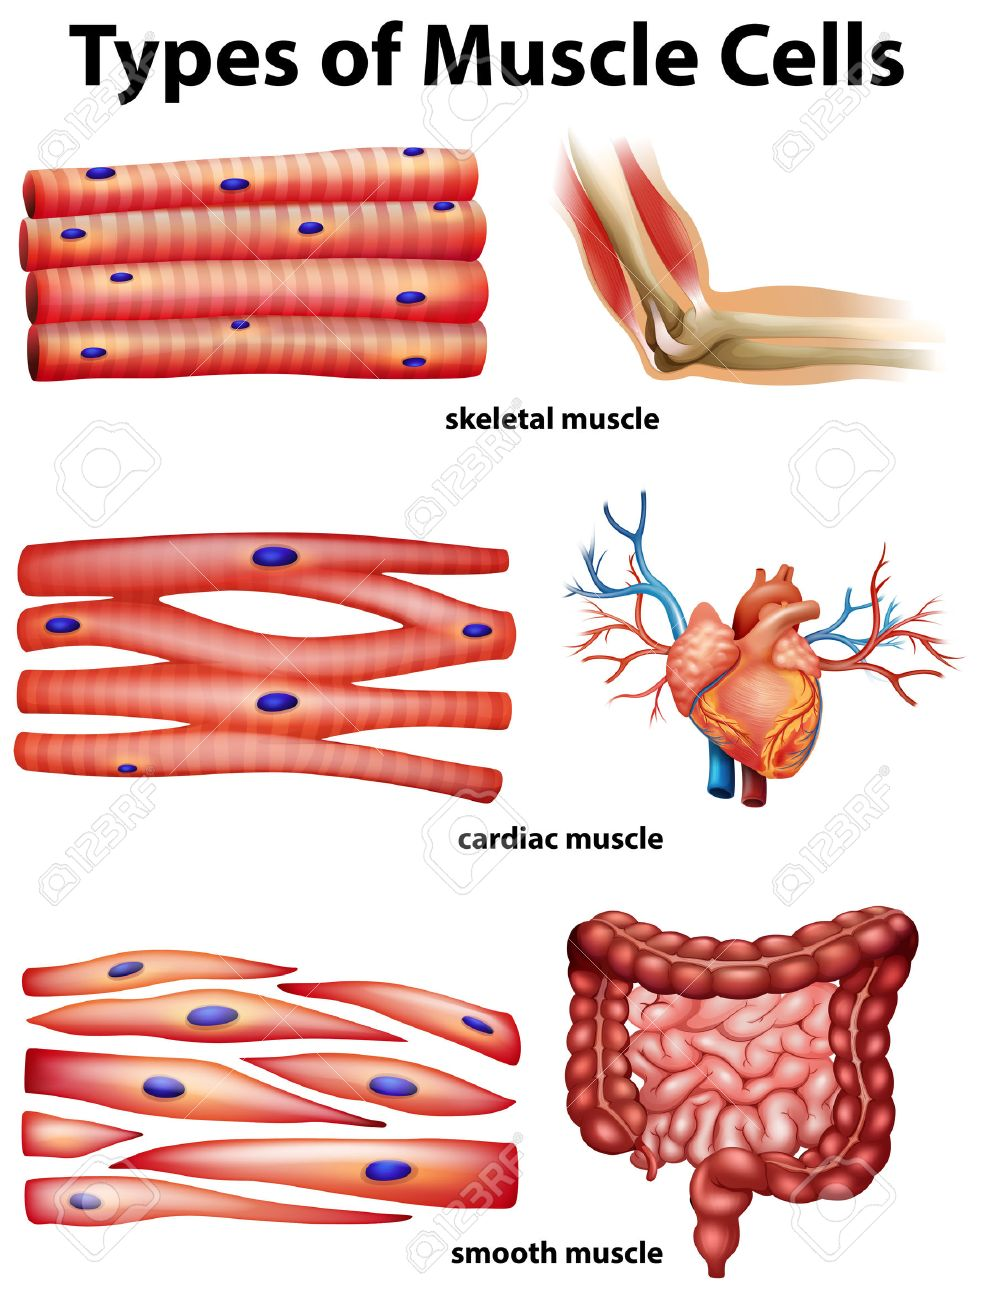 Diagram Showing Types Of Muscle Cells Illustration Royalty Free